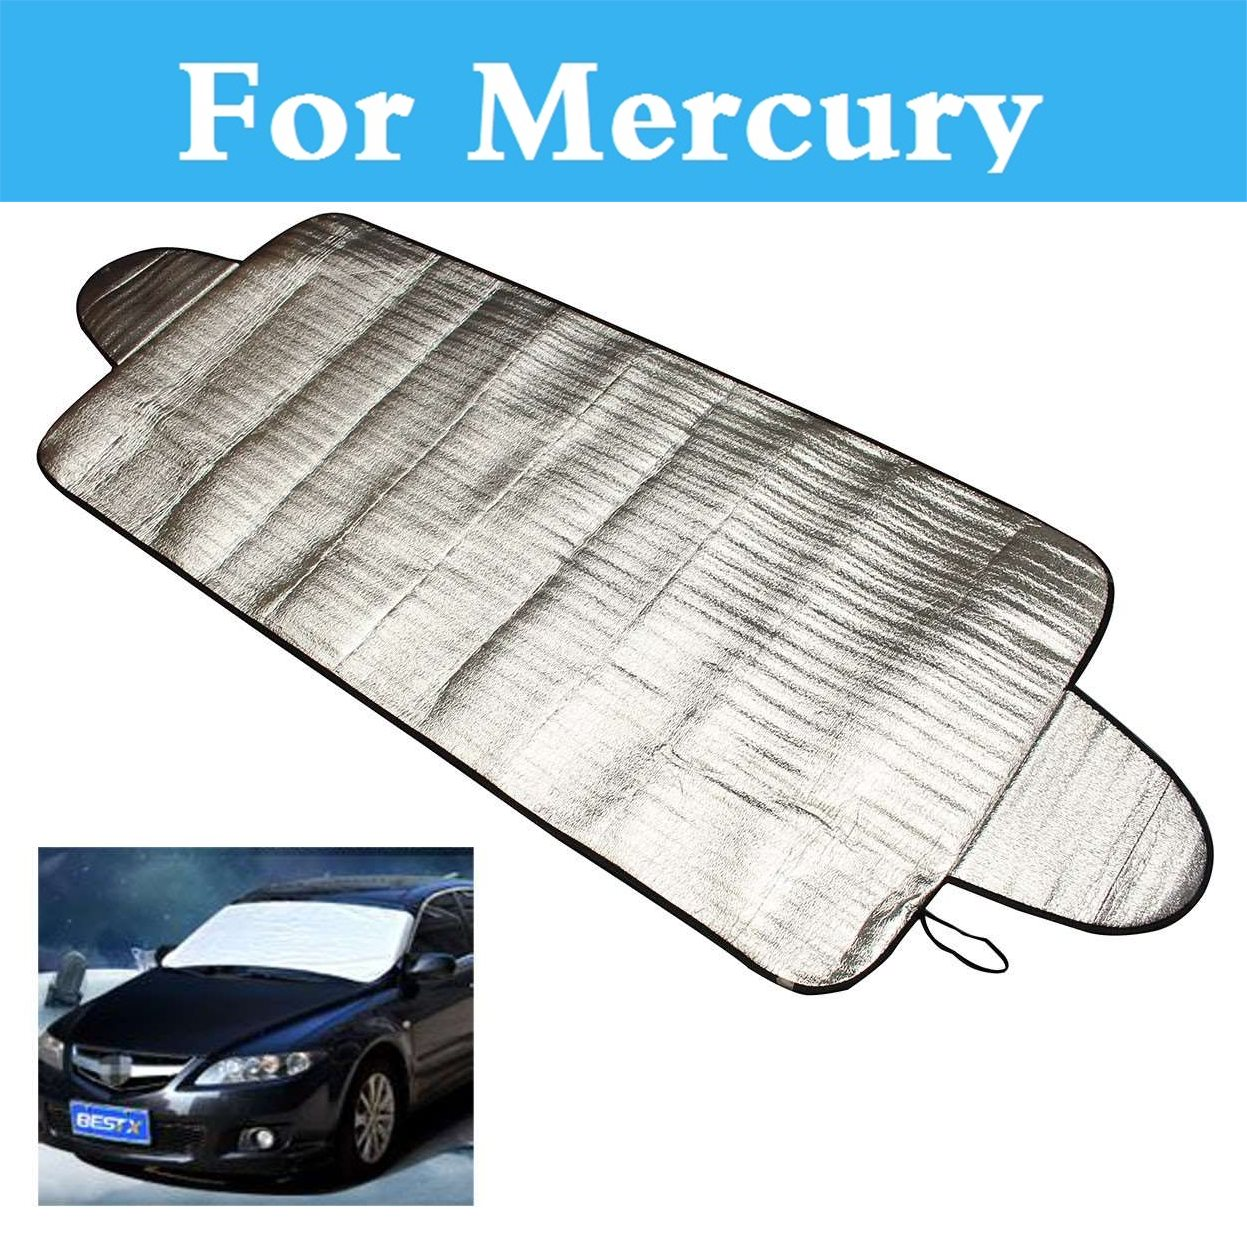 car interior Multi-purpose Car Windshield Anti Snow Shade Cover Protector For Mercury Marquis Mariner Milan Montego Grand